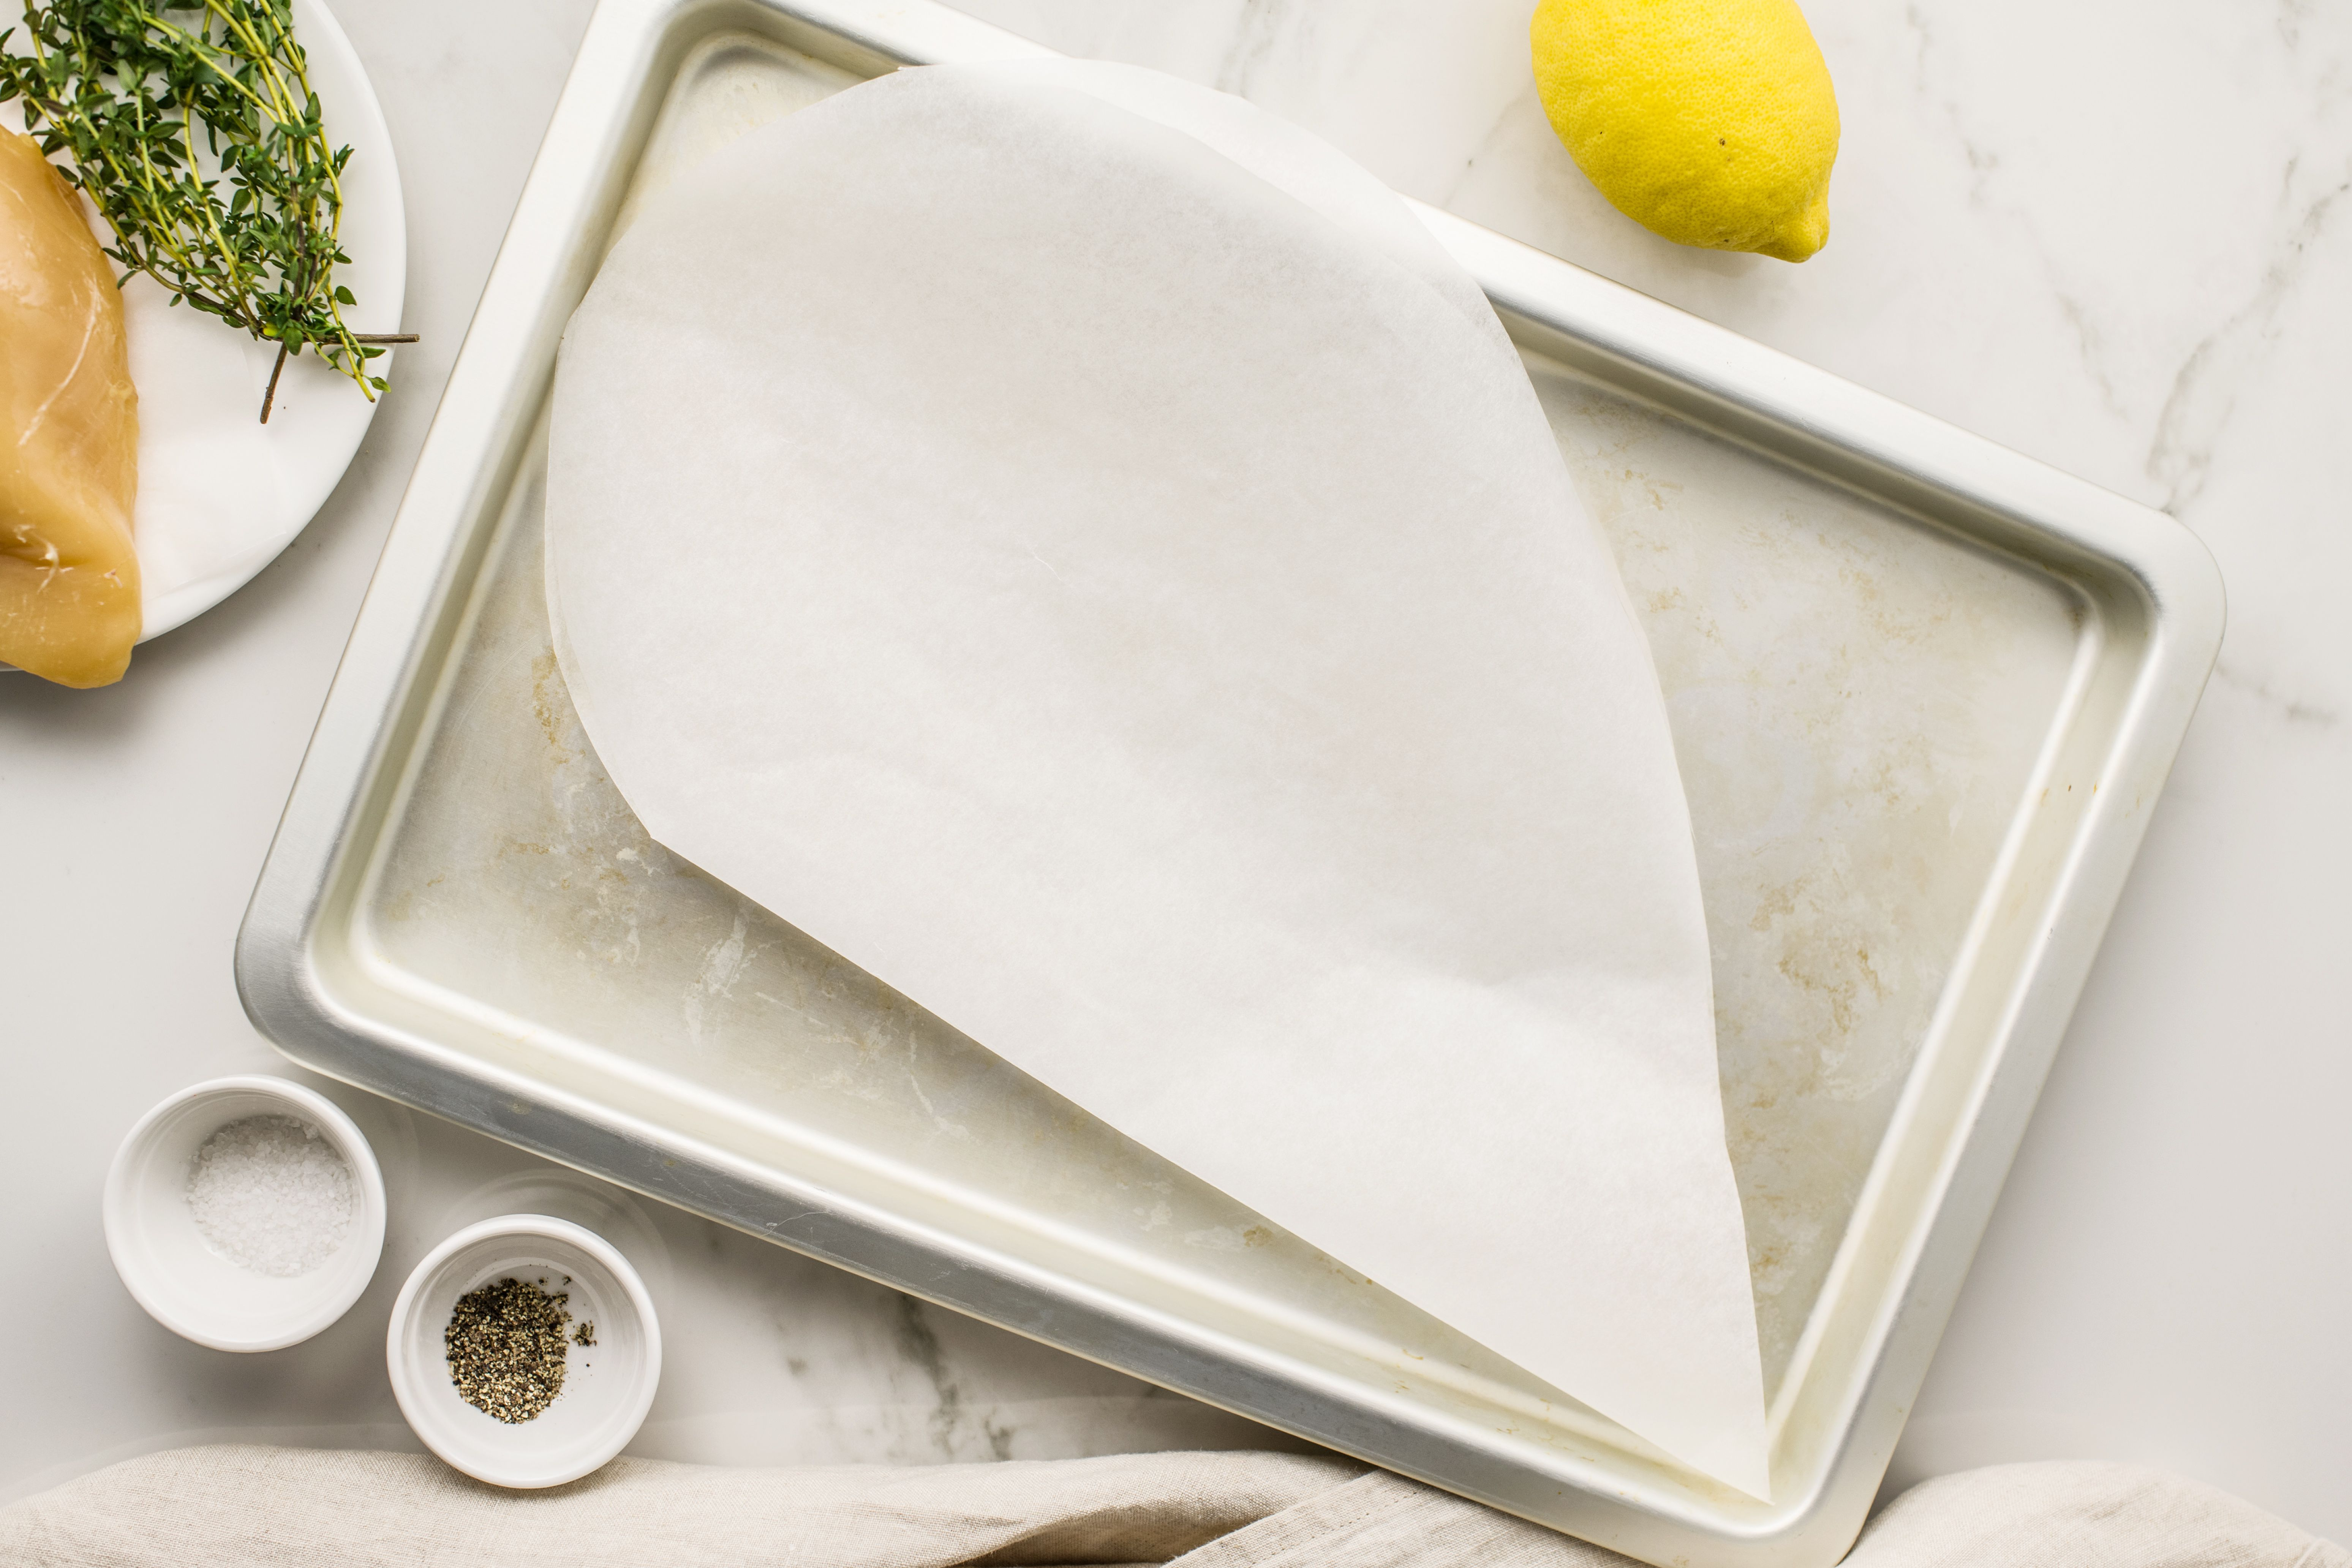 Put parchment paper on cookie sheet